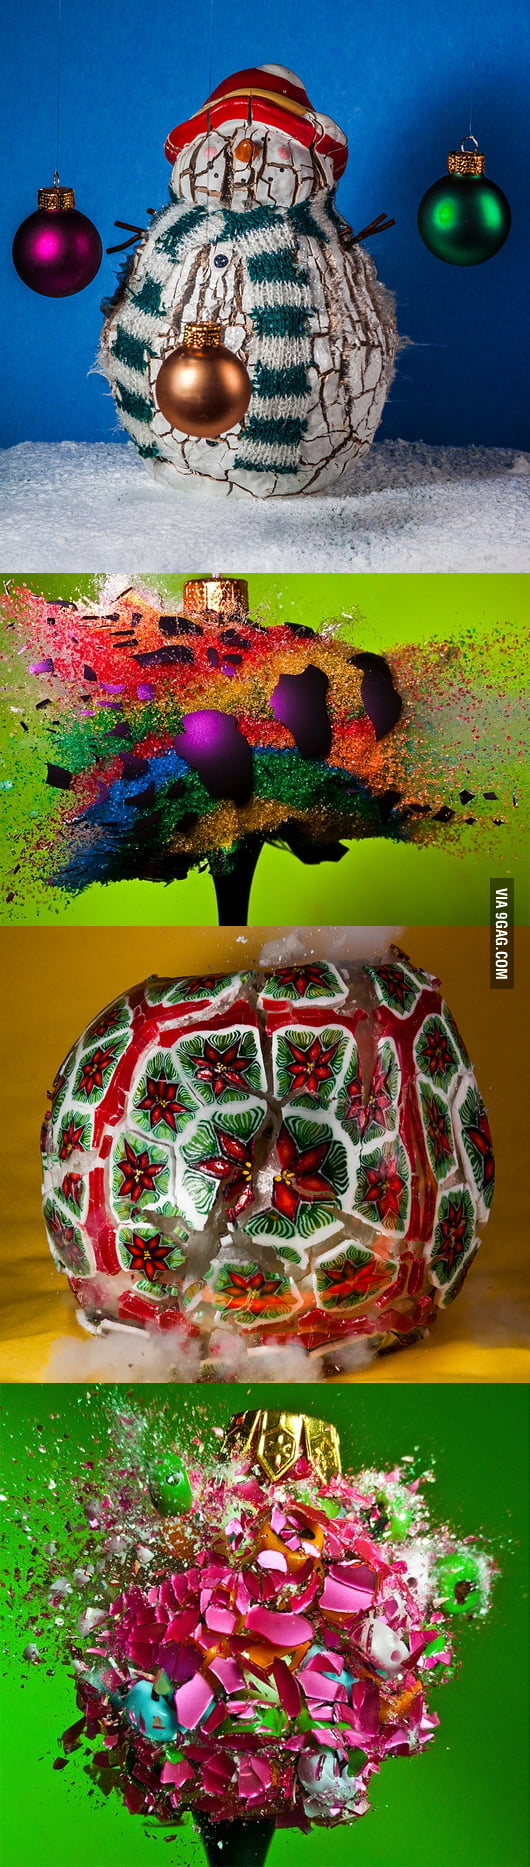 Happy holidays! Now have some exploding Xmas ornaments!